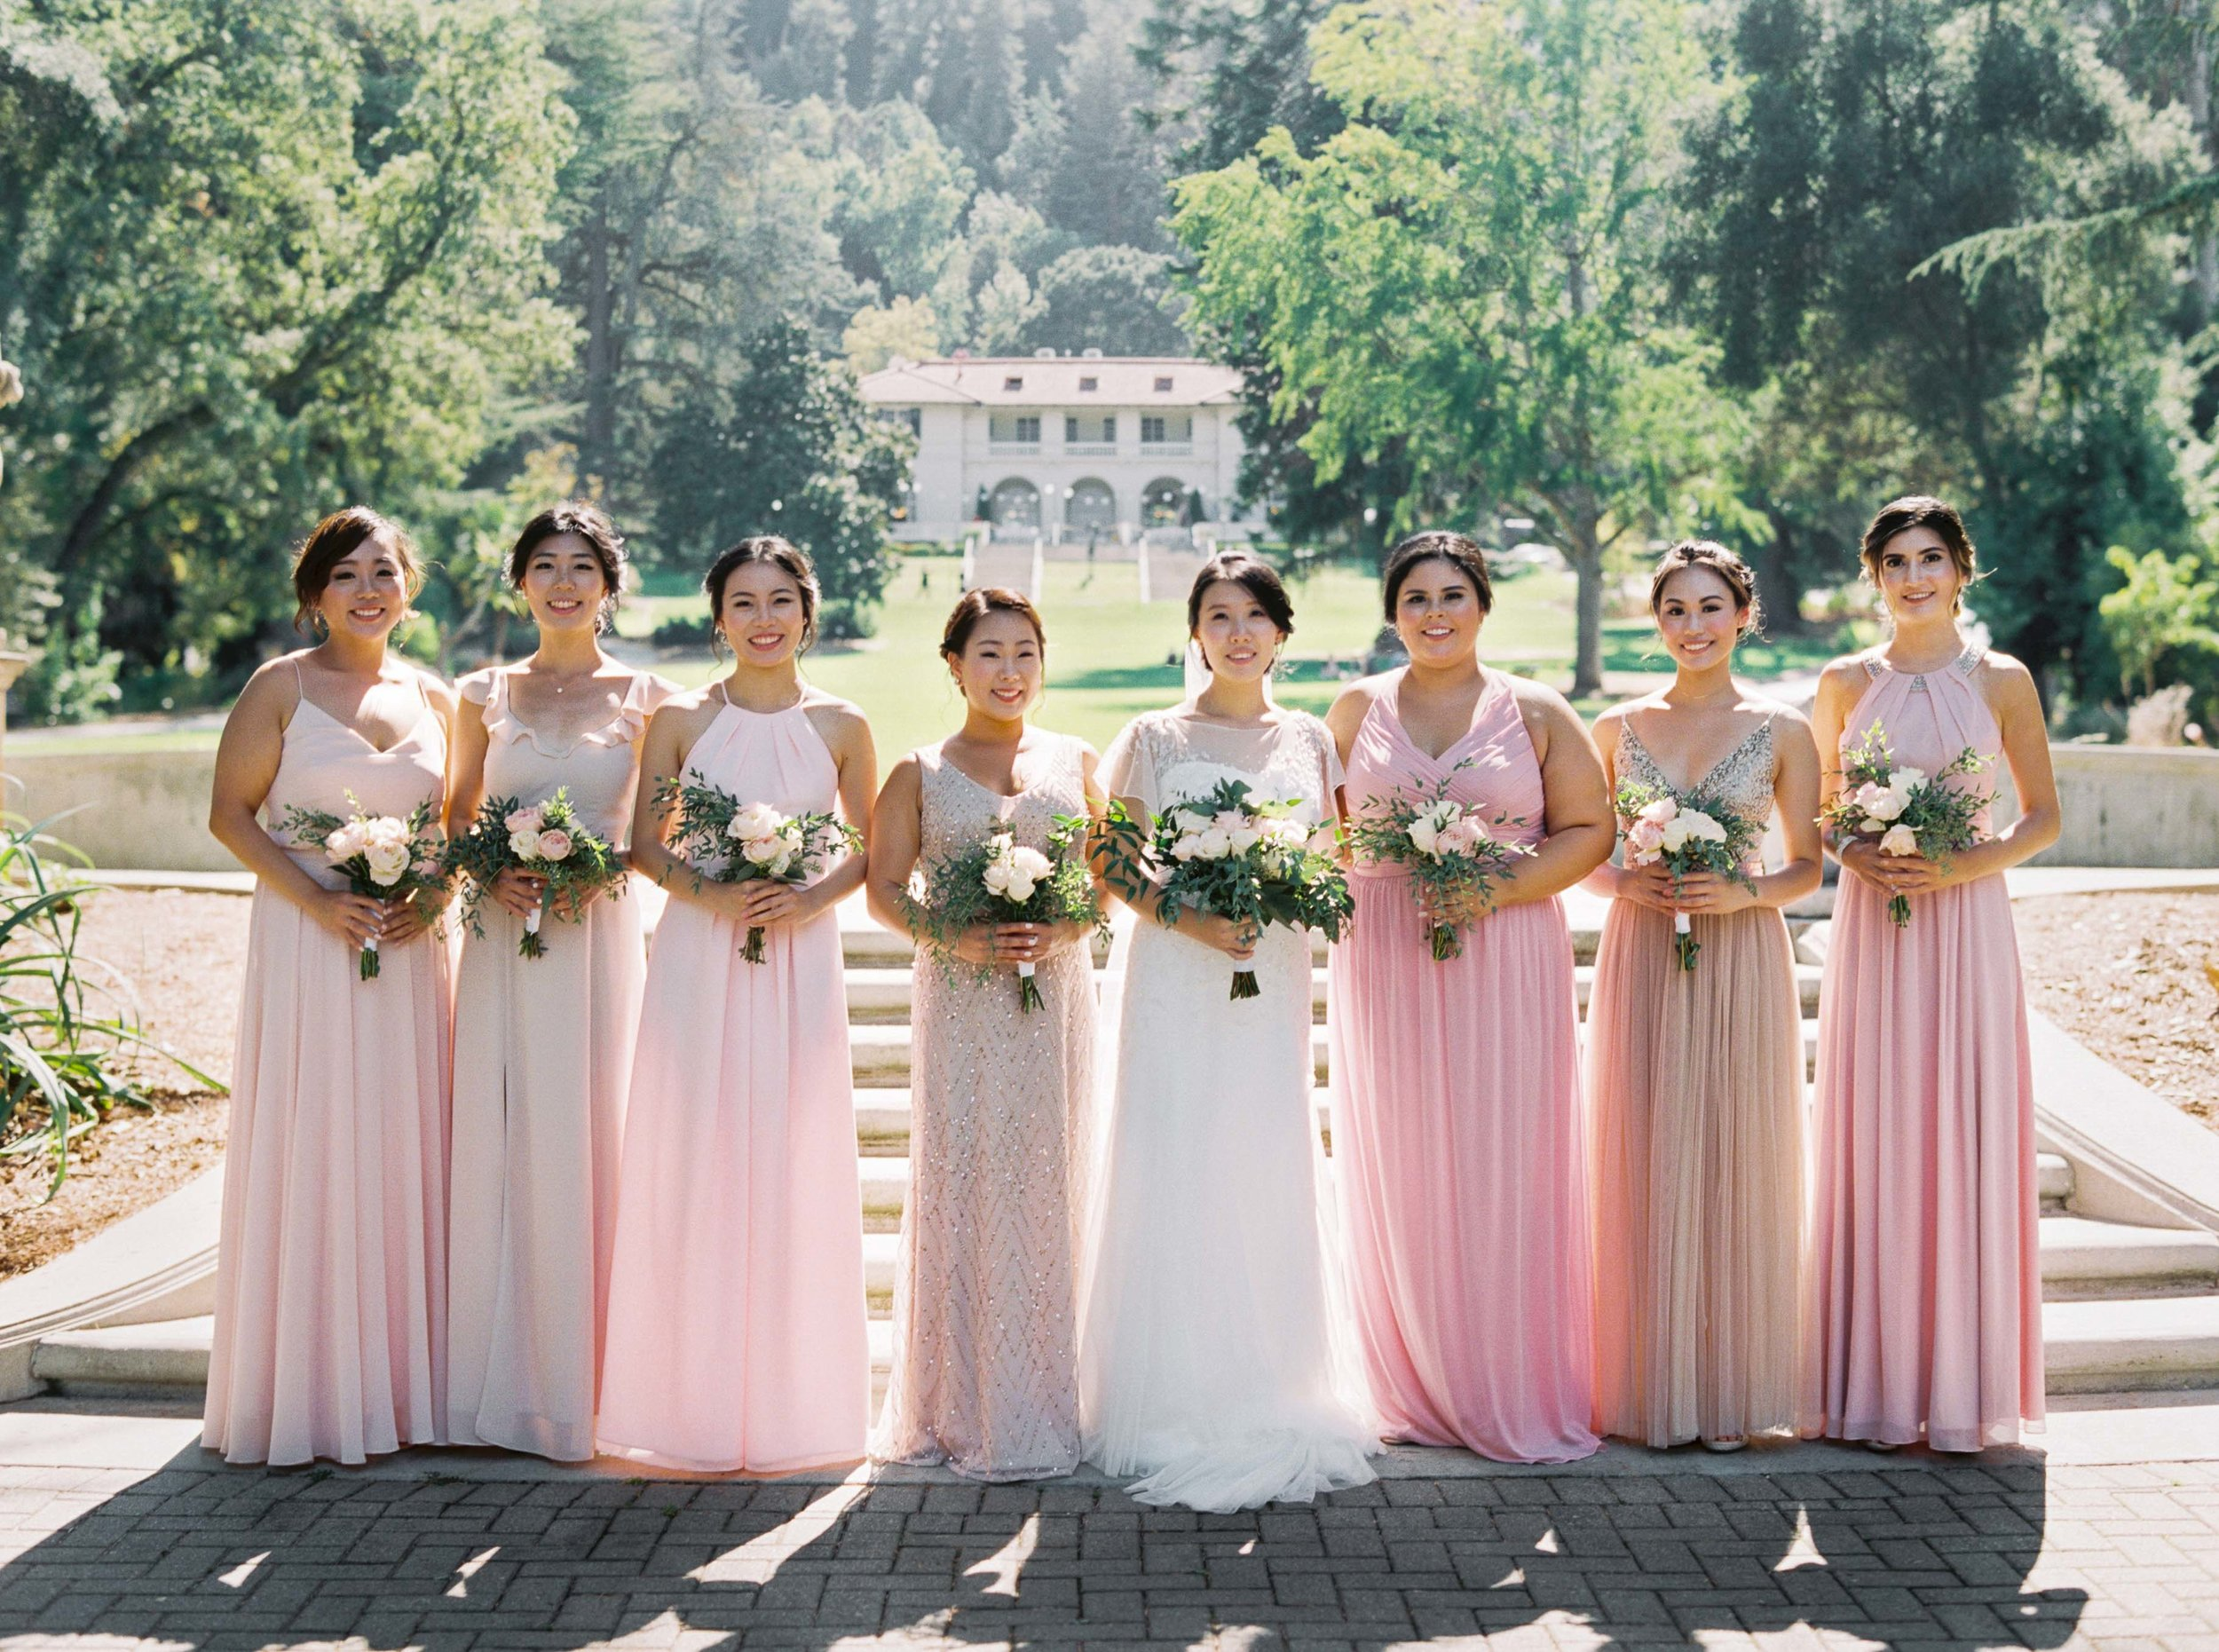 Villa_Montalvo_Wedding_Photographer_Videographer_San_Francisco068.jpg